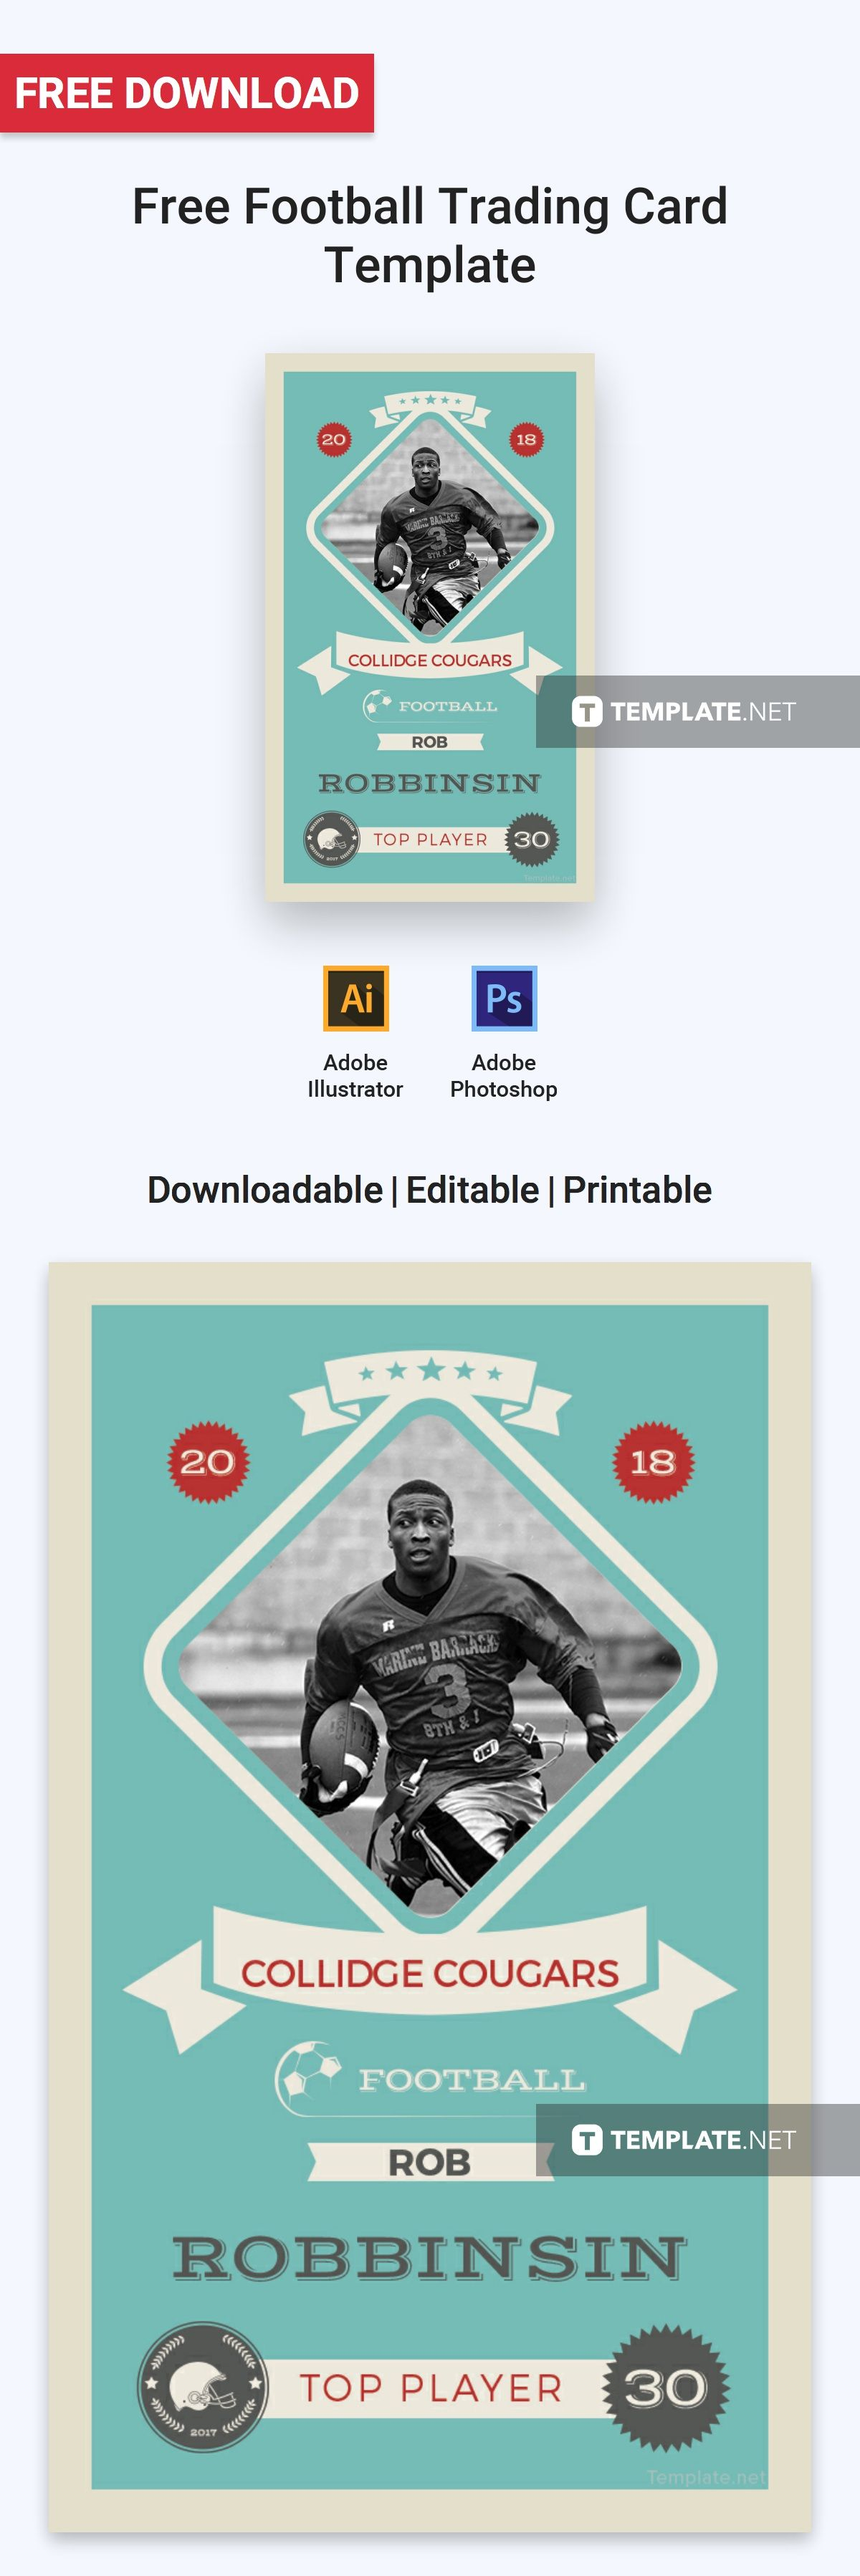 Free Football Trading Card Template Word Doc Psd Apple Mac Pages Illustrator Publisher Trading Card Template Football Trading Cards Cards